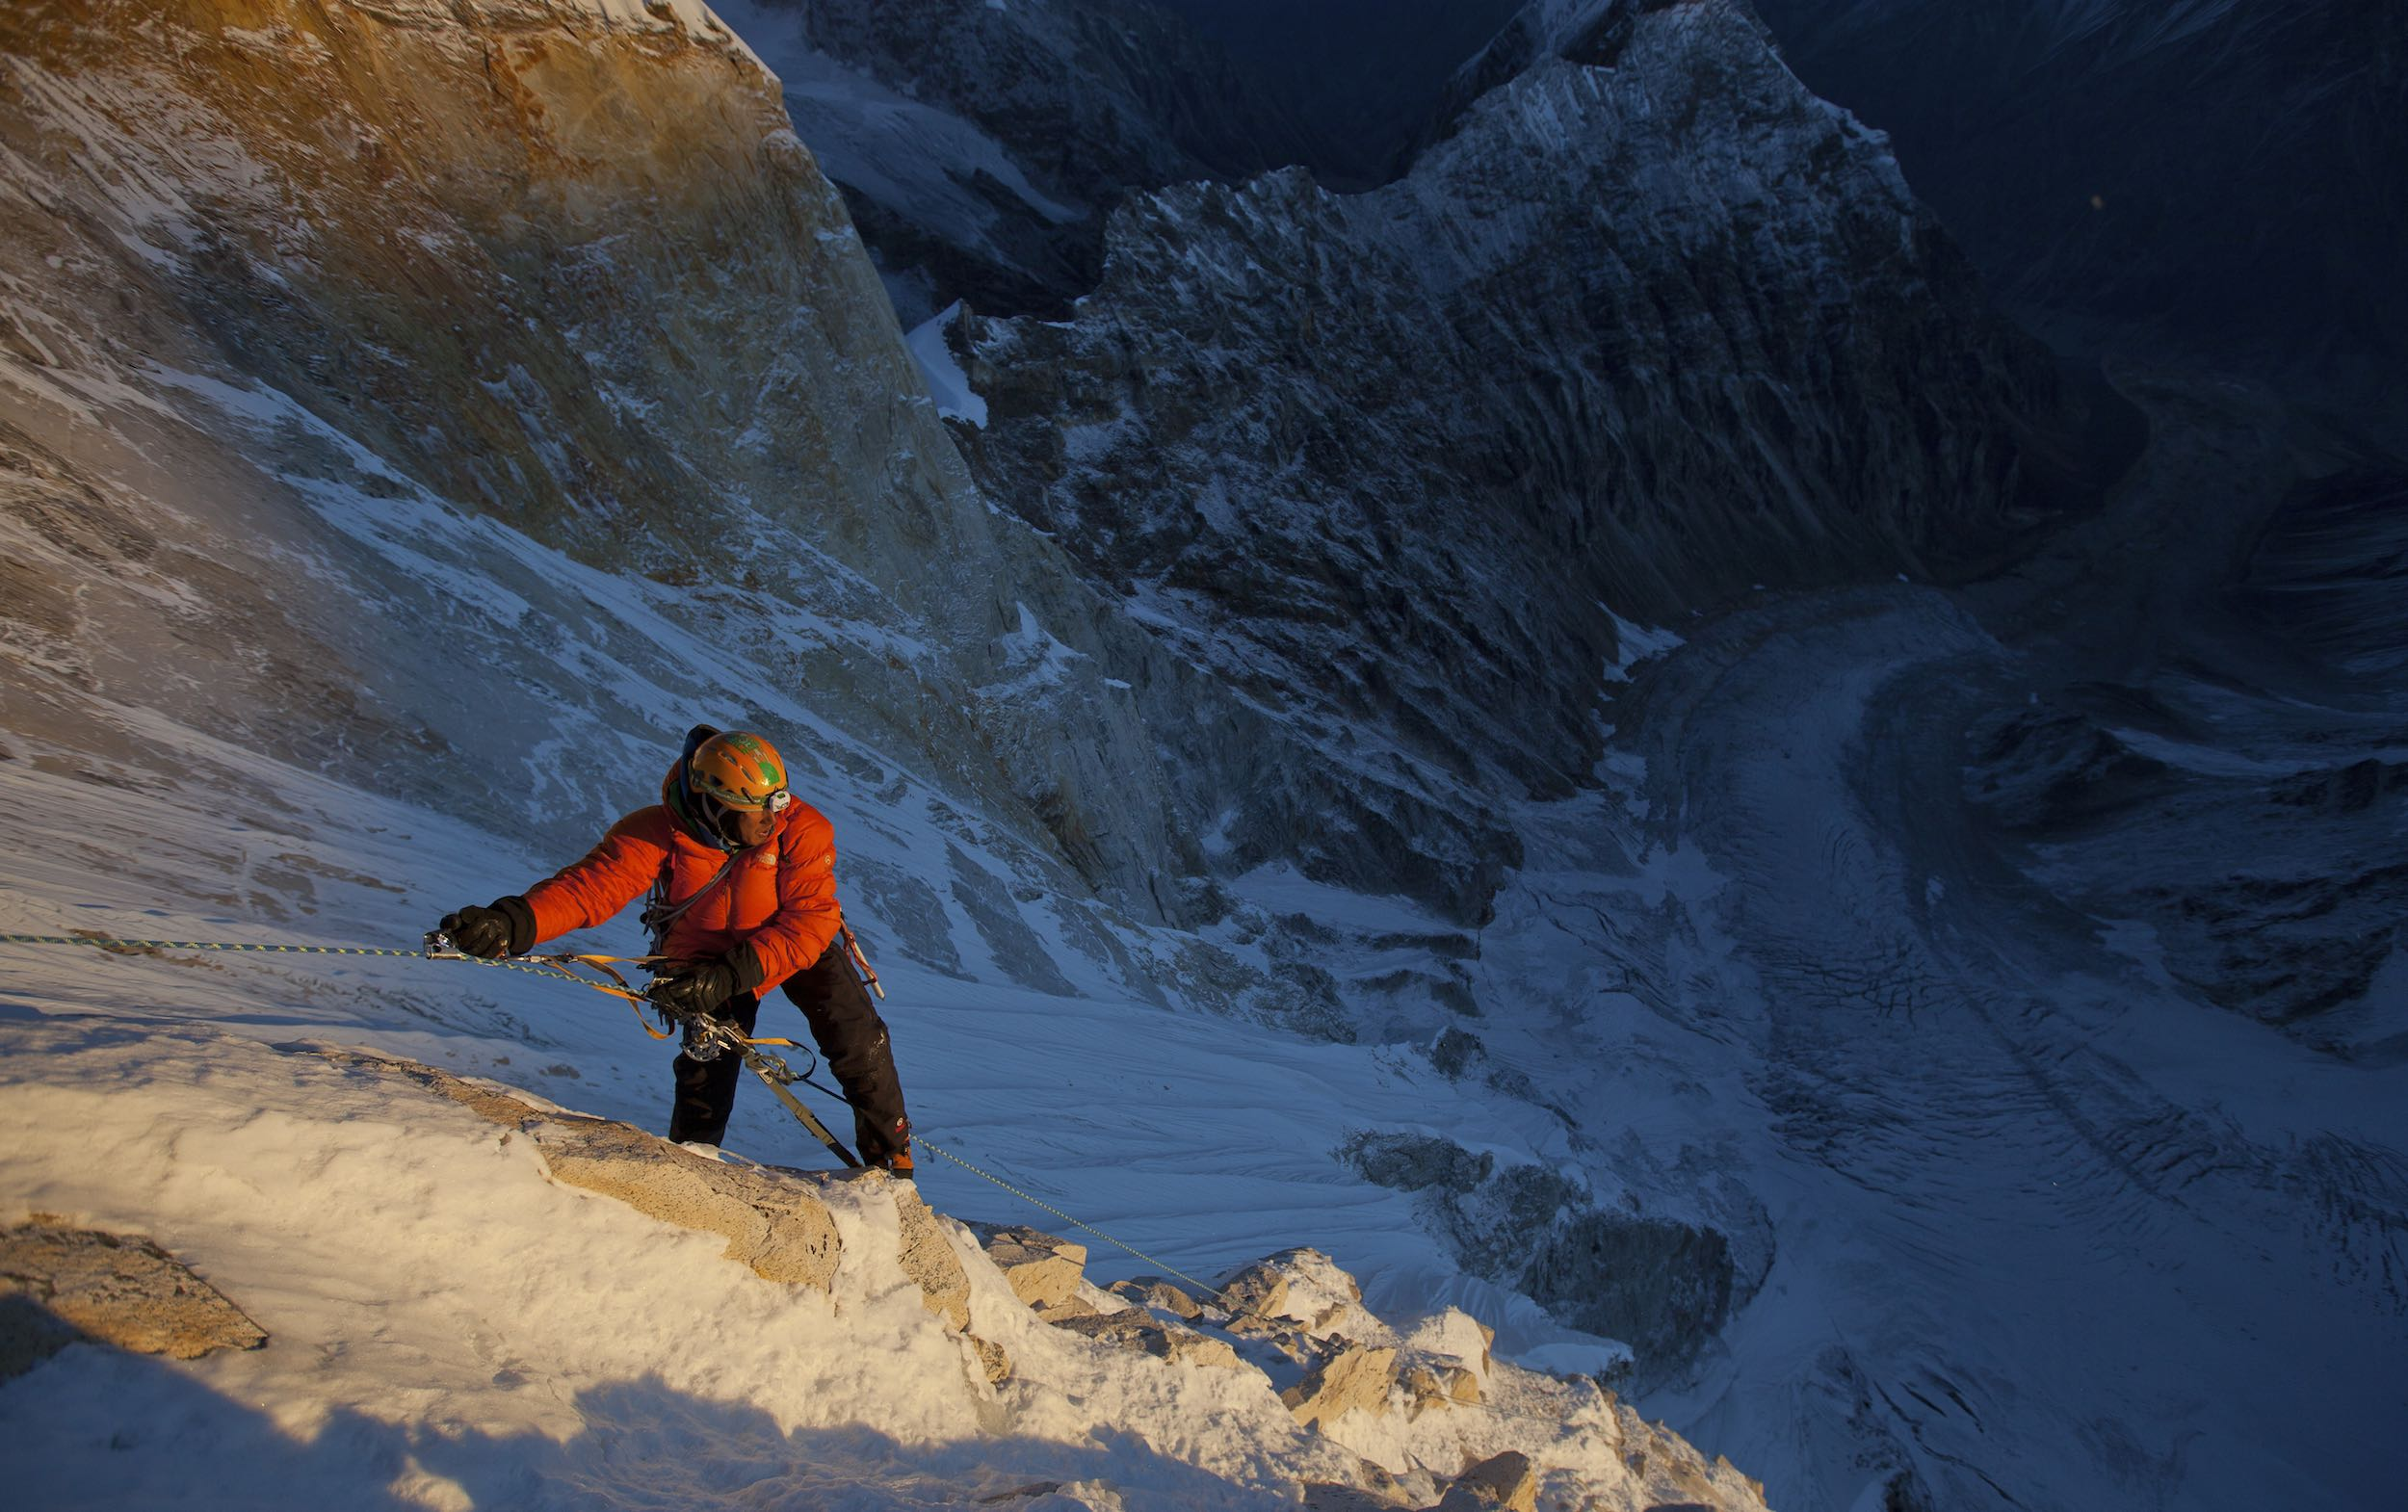 Jimmy Chin at first light on the 11th day of climbing. This was the summit day push. © Jimmy Chin from http://www.merufilm.com/